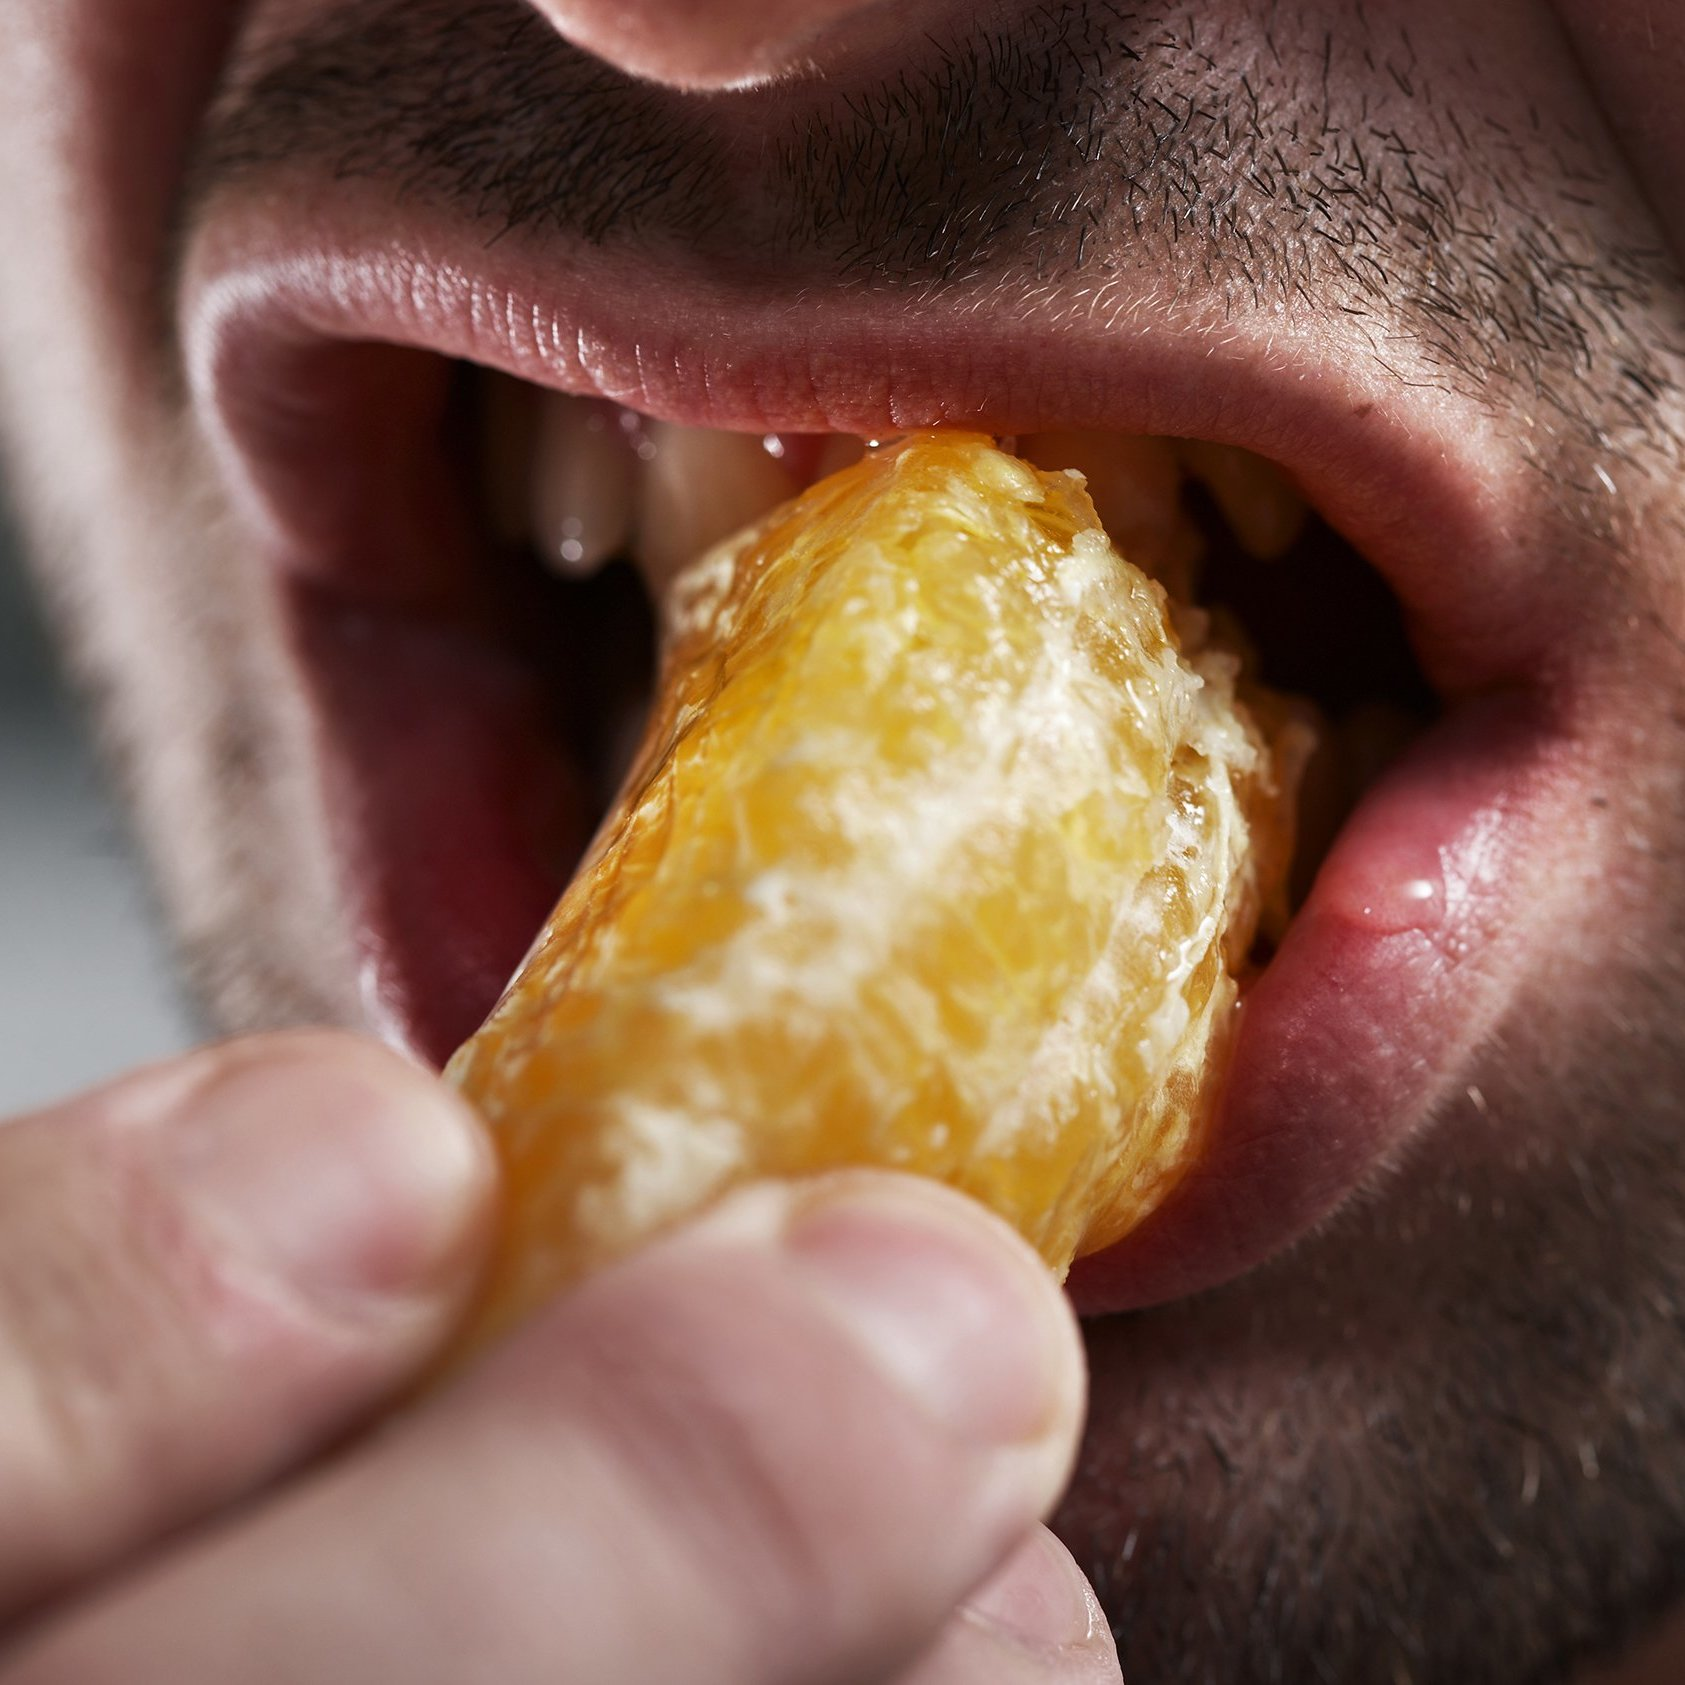 Does the Sound of Noisy Eating Drive You Mad? Here's Why